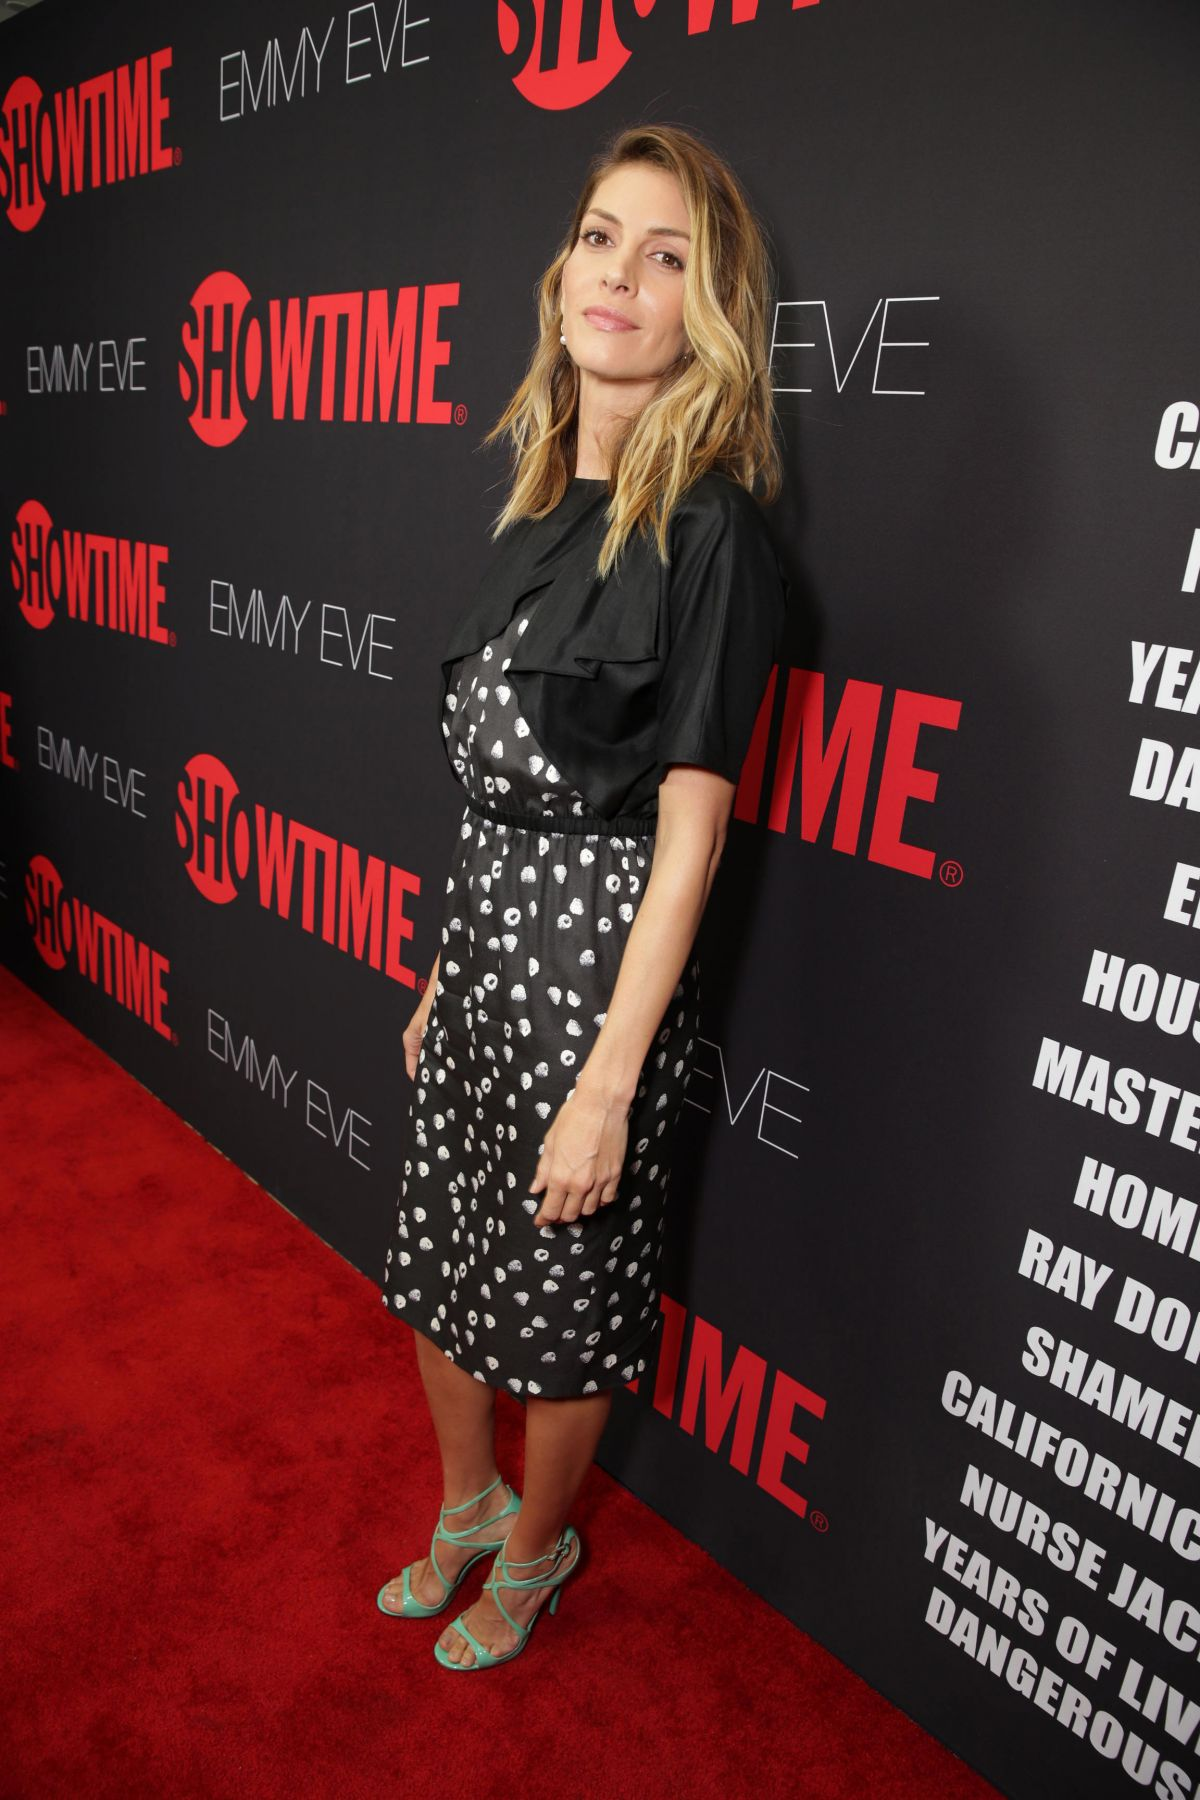 Dawn Olivieri At Showtime's Emmy Eve Soiree - Celebzz ... Emmy Eve